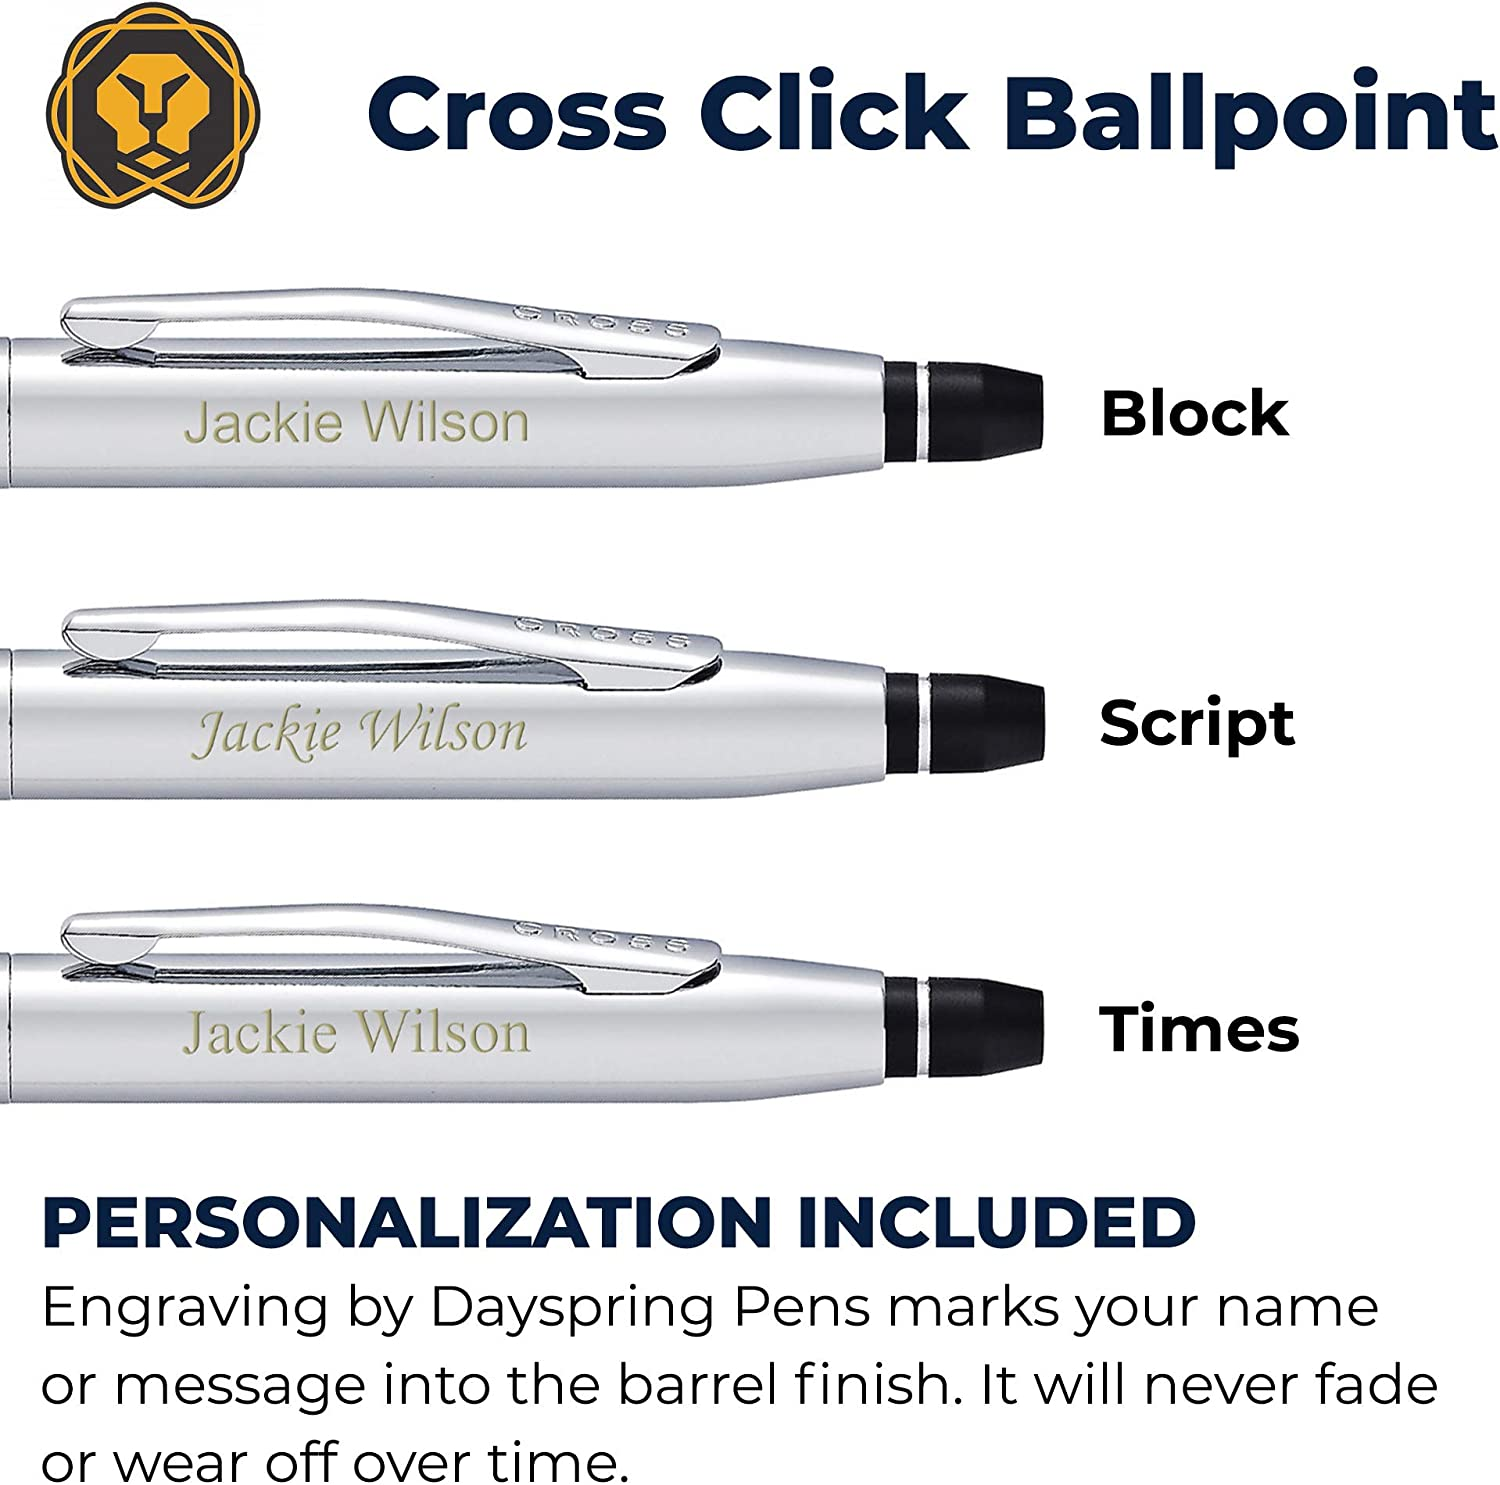 Custom Name Engraving By Dayspring Pens AT0622-101 Comes in Cross Gift Case. Engraved Cross Pen Personalized Cross Click Ballpoint Pen Polished Chrome